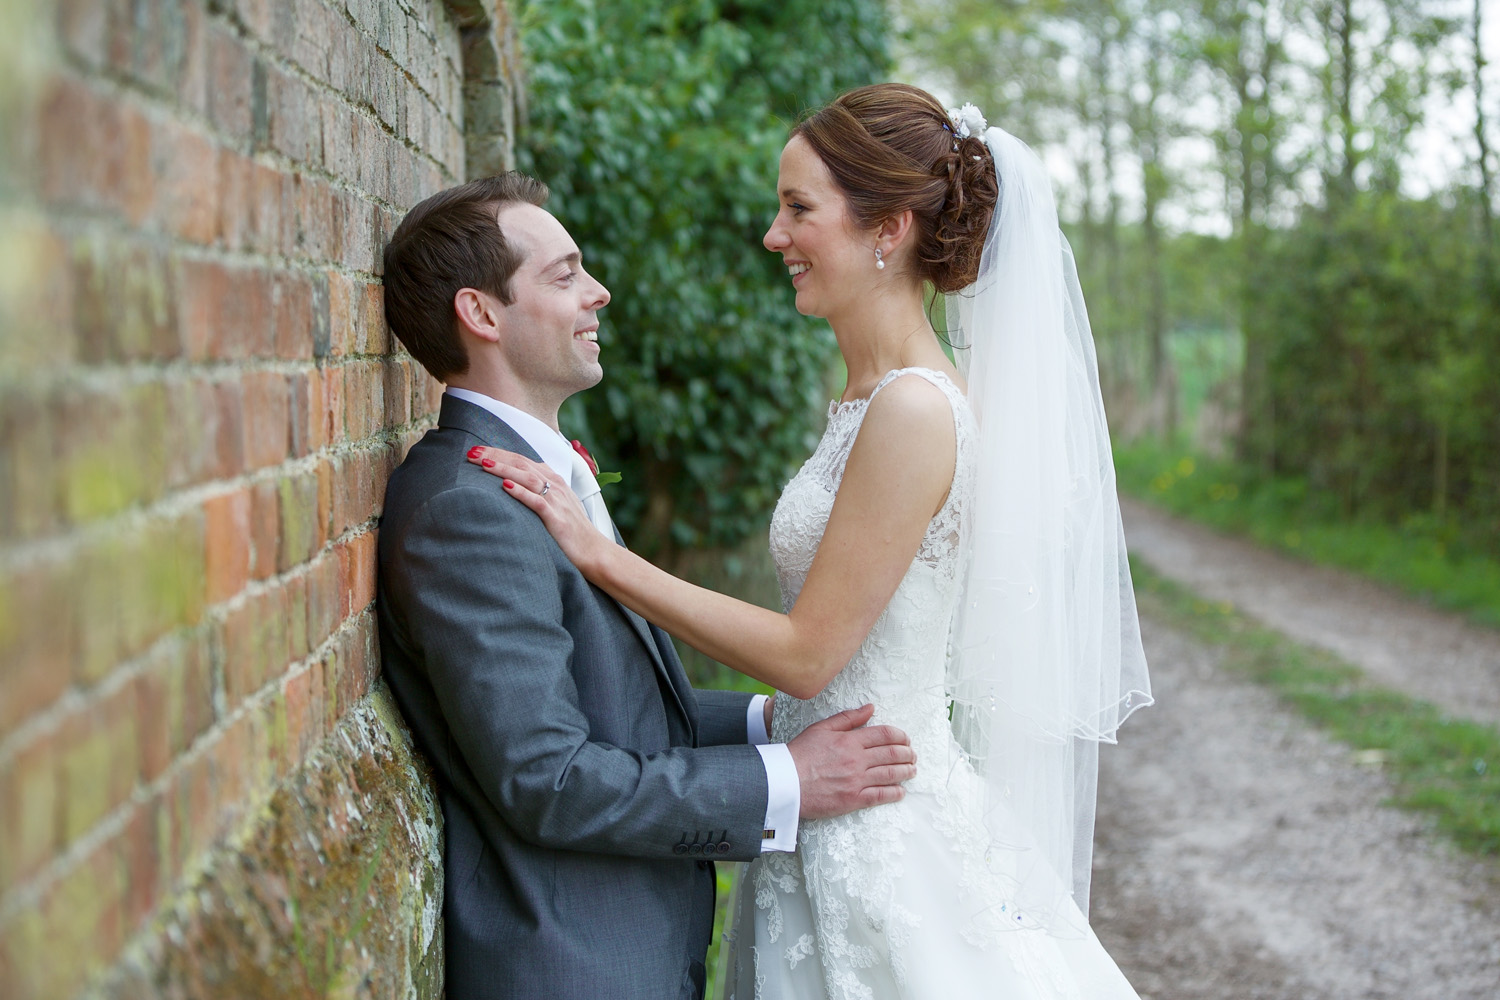 The_Mill_House_Wedding_Photographer_Swallowfield_029.jpg